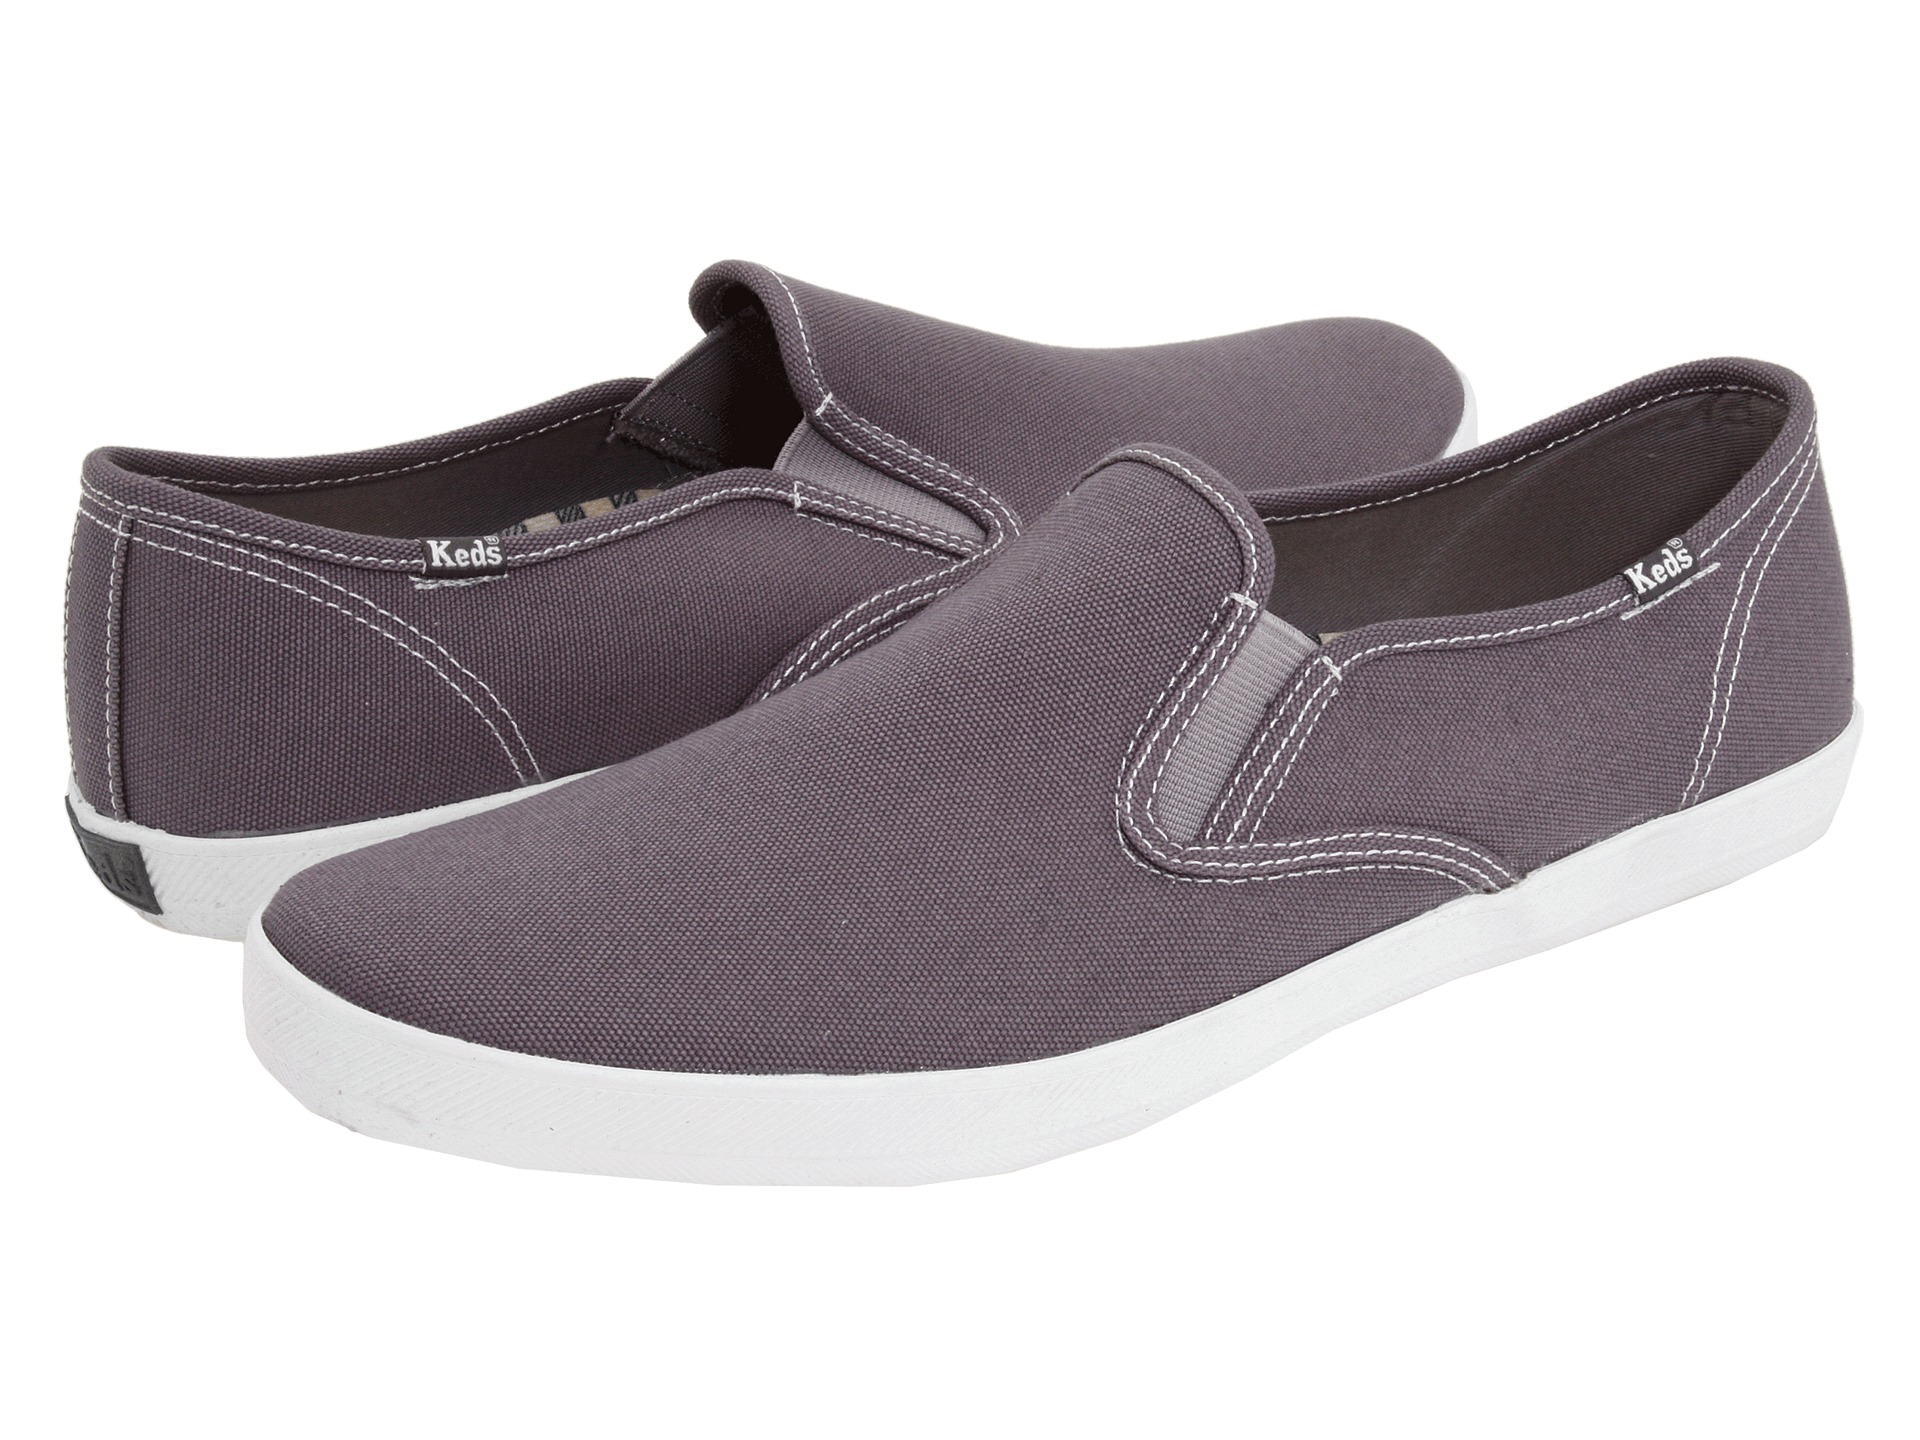 keds champion slip on fabric sneaker